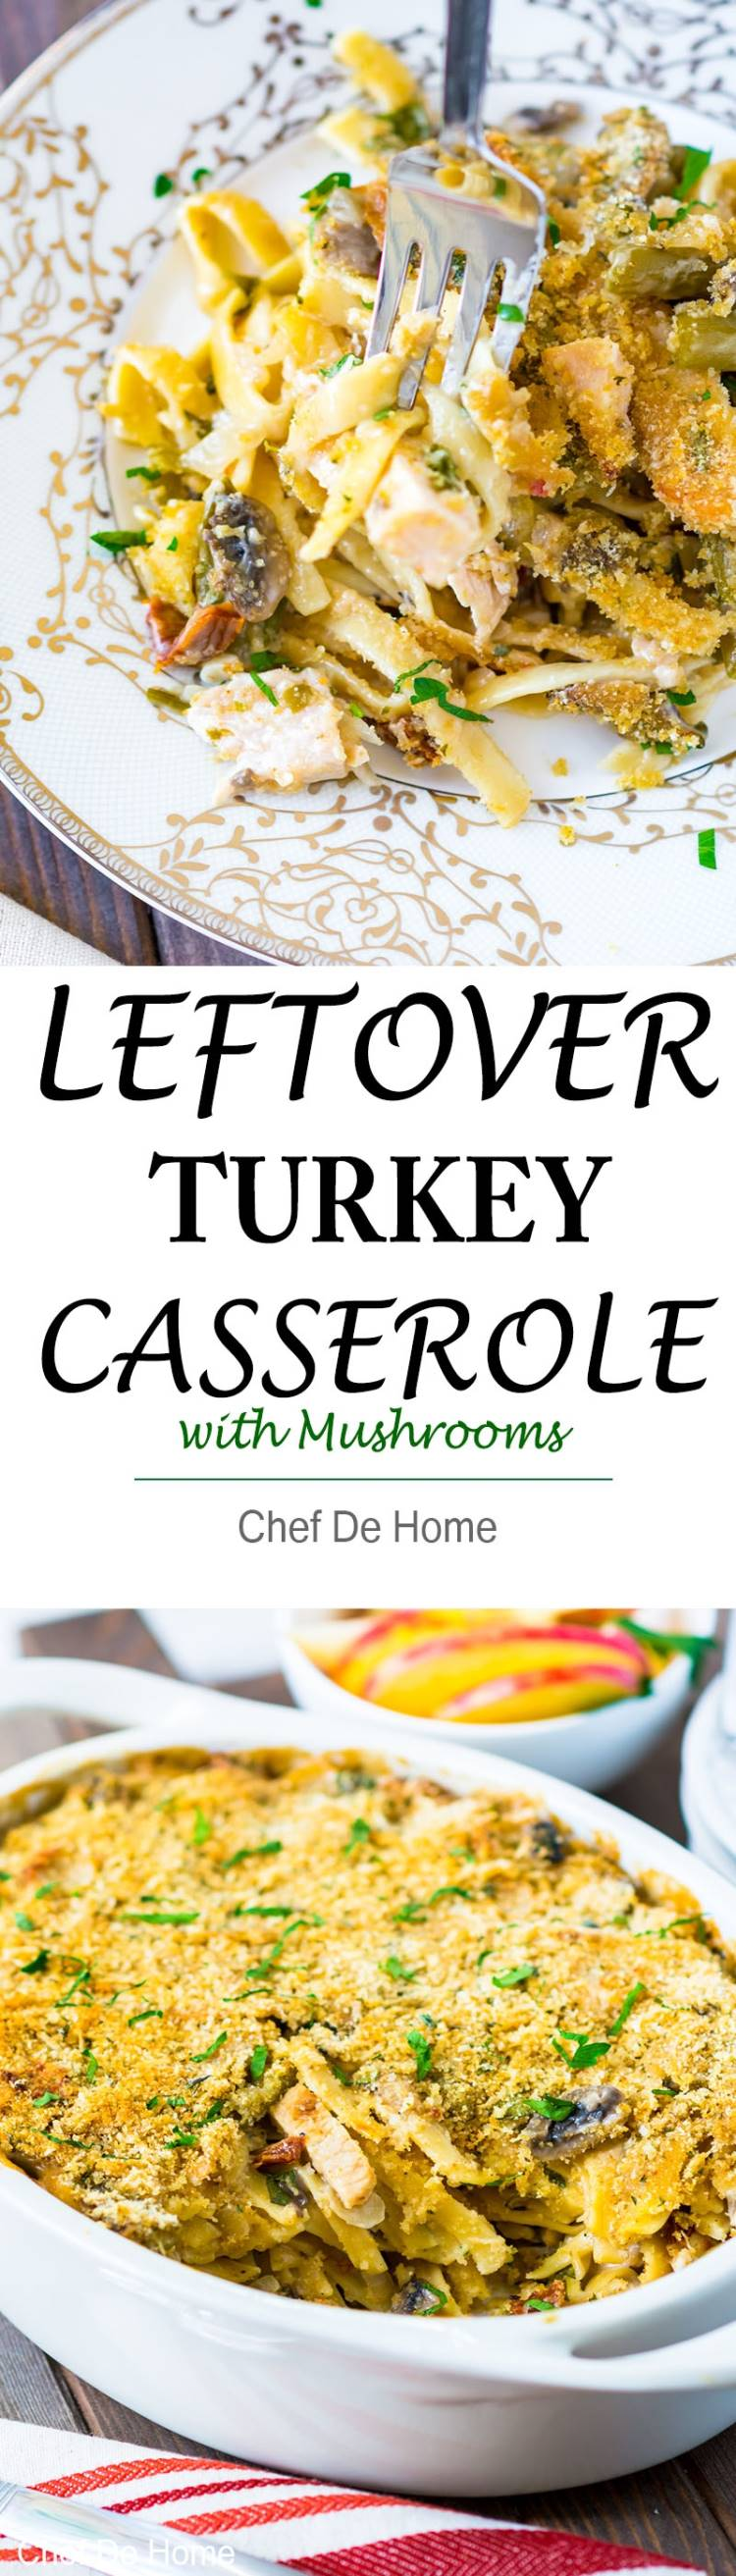 Turkey and Pasta Casserole with Mushrooms | chefdehome.com